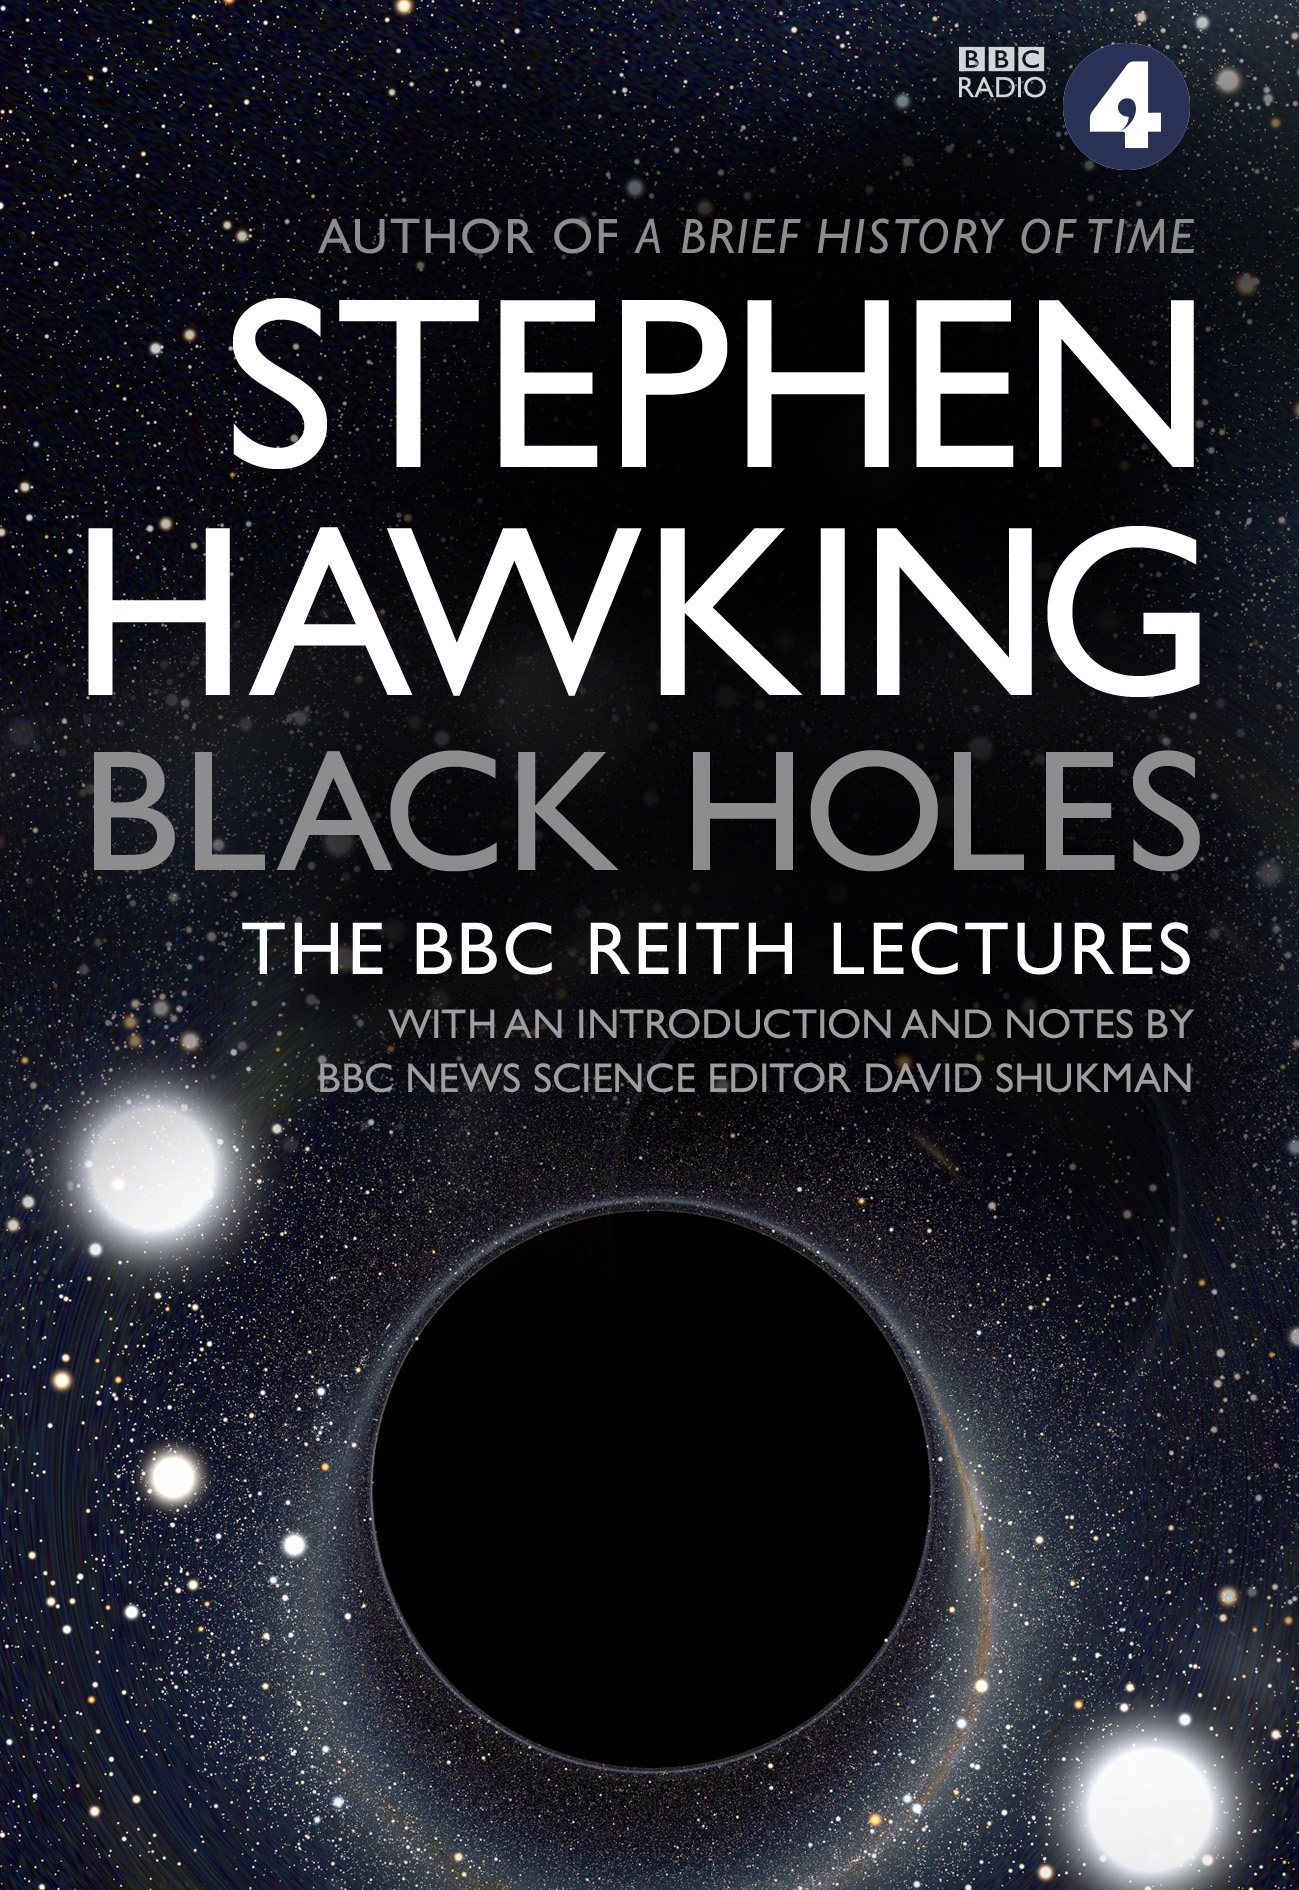 stephen hawking black holes - photo #16